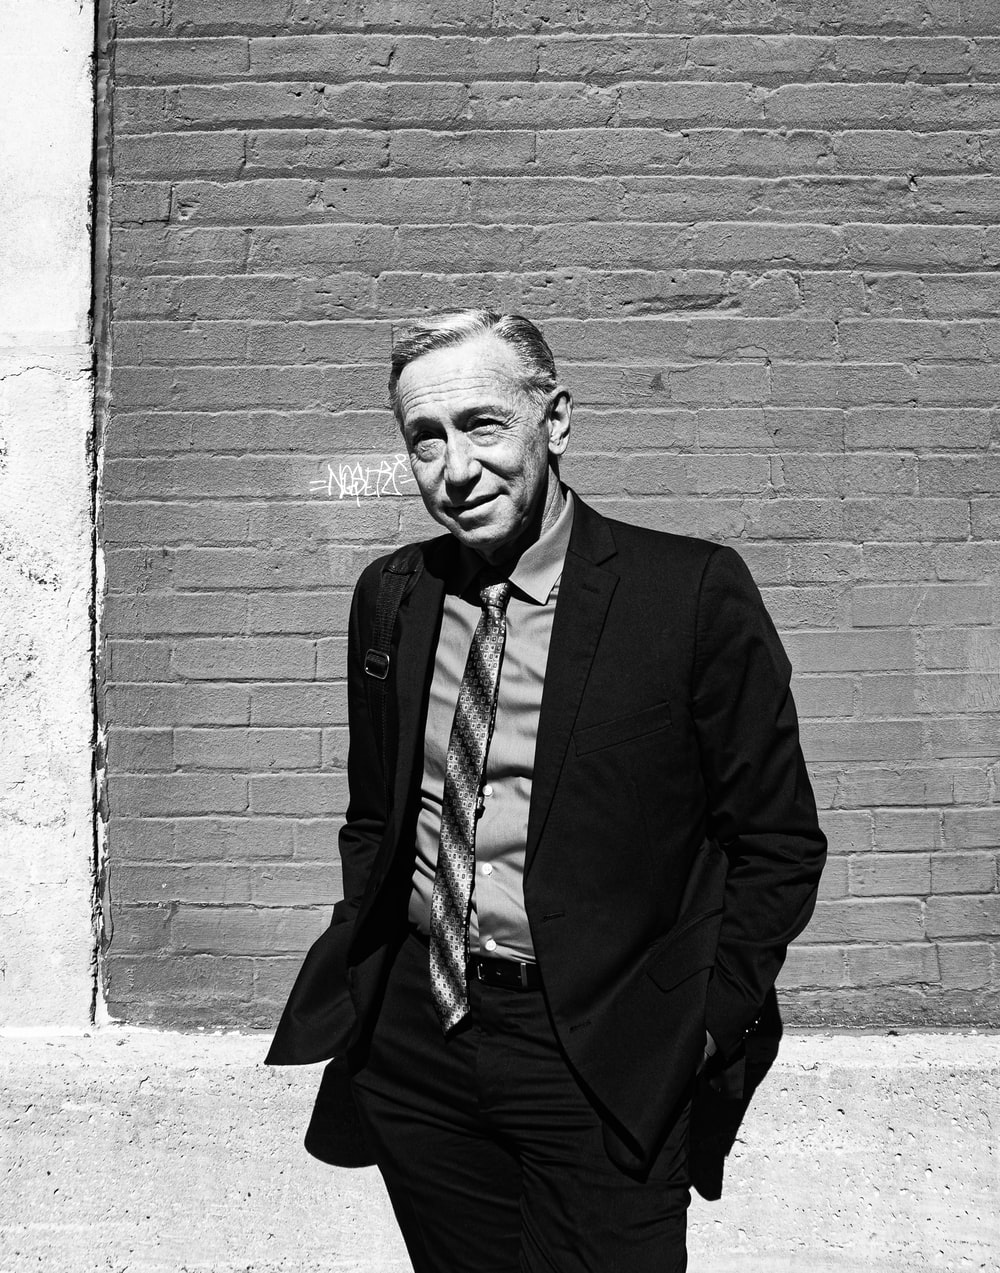 greyscale photo of man in suit